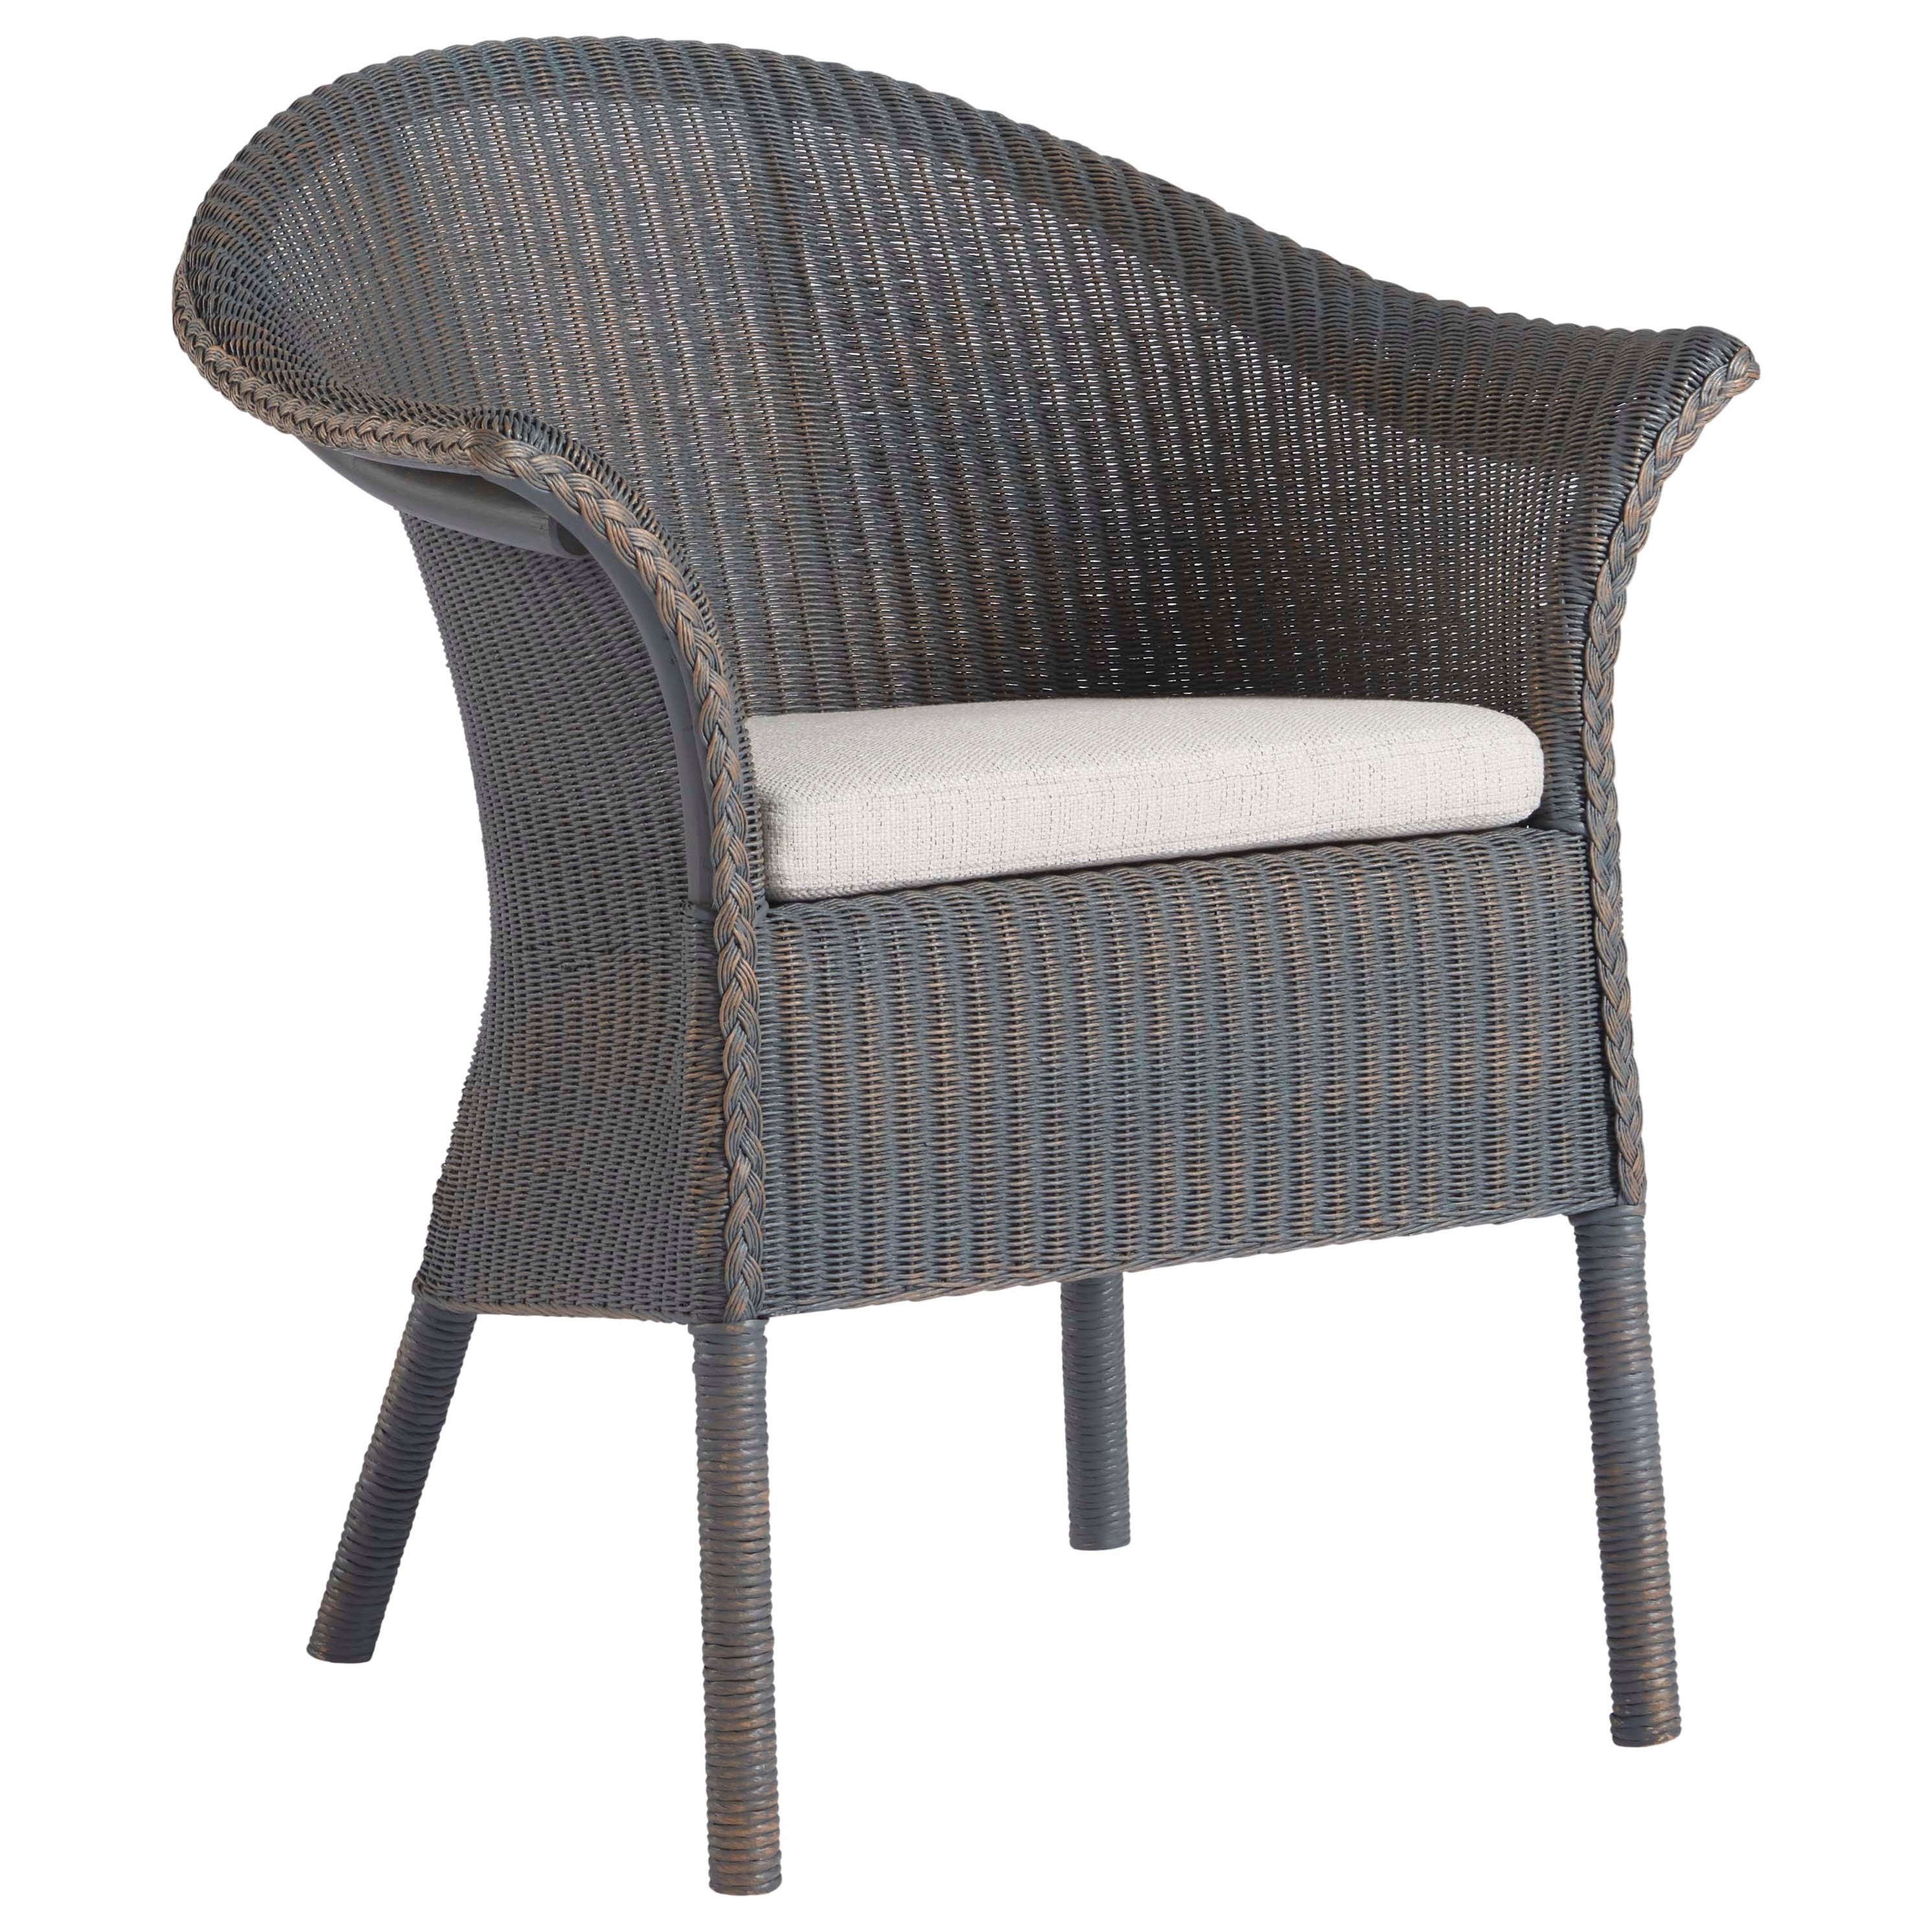 Coastal Living Home - Escape Bar Harbor Dining and Accent Chair by Universal at Zak's Home